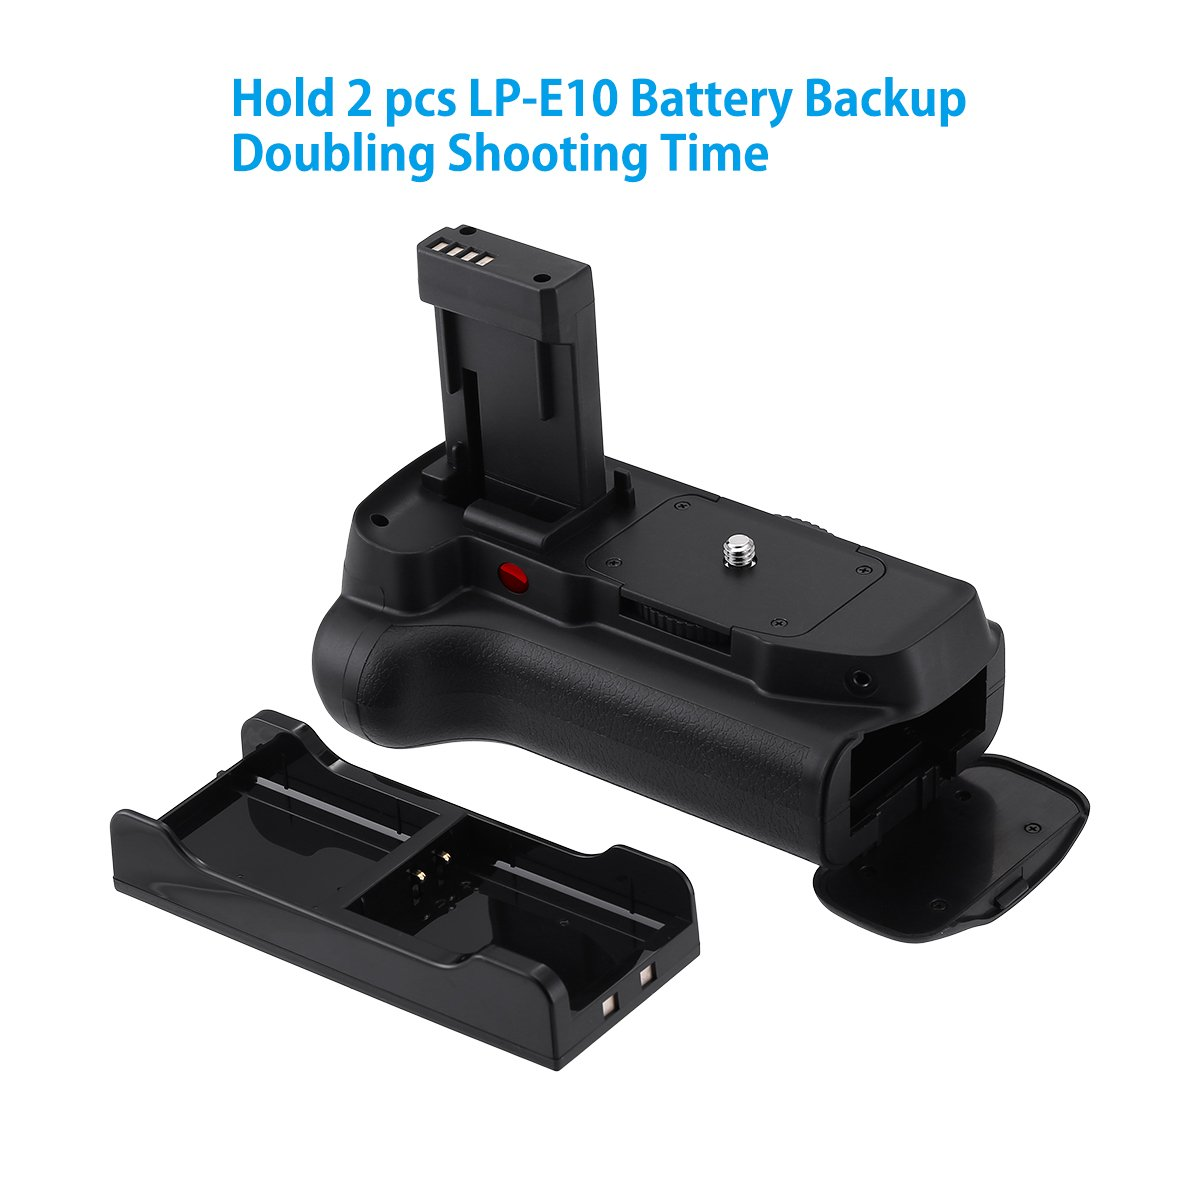 AA-Size Battery Holder with Infrared Remote Control for Canon EOS 1100D//1200D//1300D//T3//T5//T6 Digital SLR Camera 2 /× High Capacity 1600mAh LP-E10 Batteries Powerextra Vertical Battery Grip